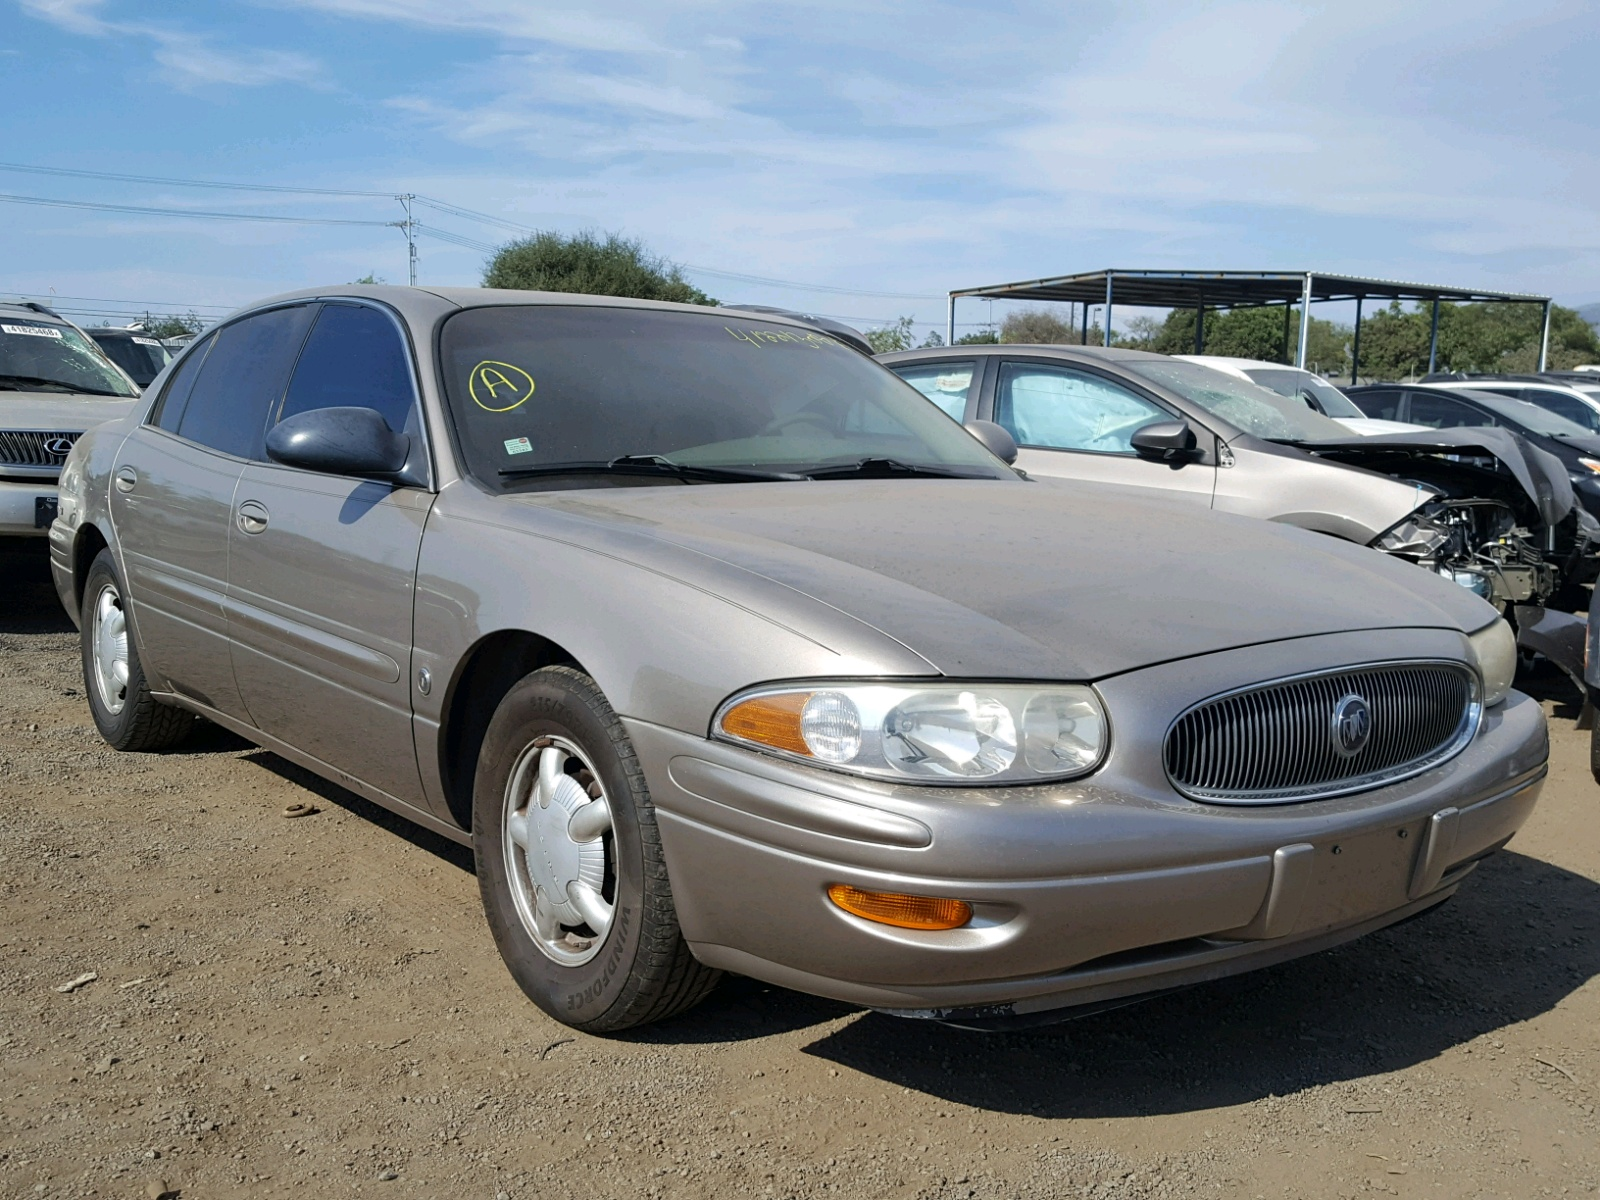 1g4hp54k9yu108396 2000 Gold Buick Lesabre Cu On Sale In Ca San 51 Concept 38l Left View